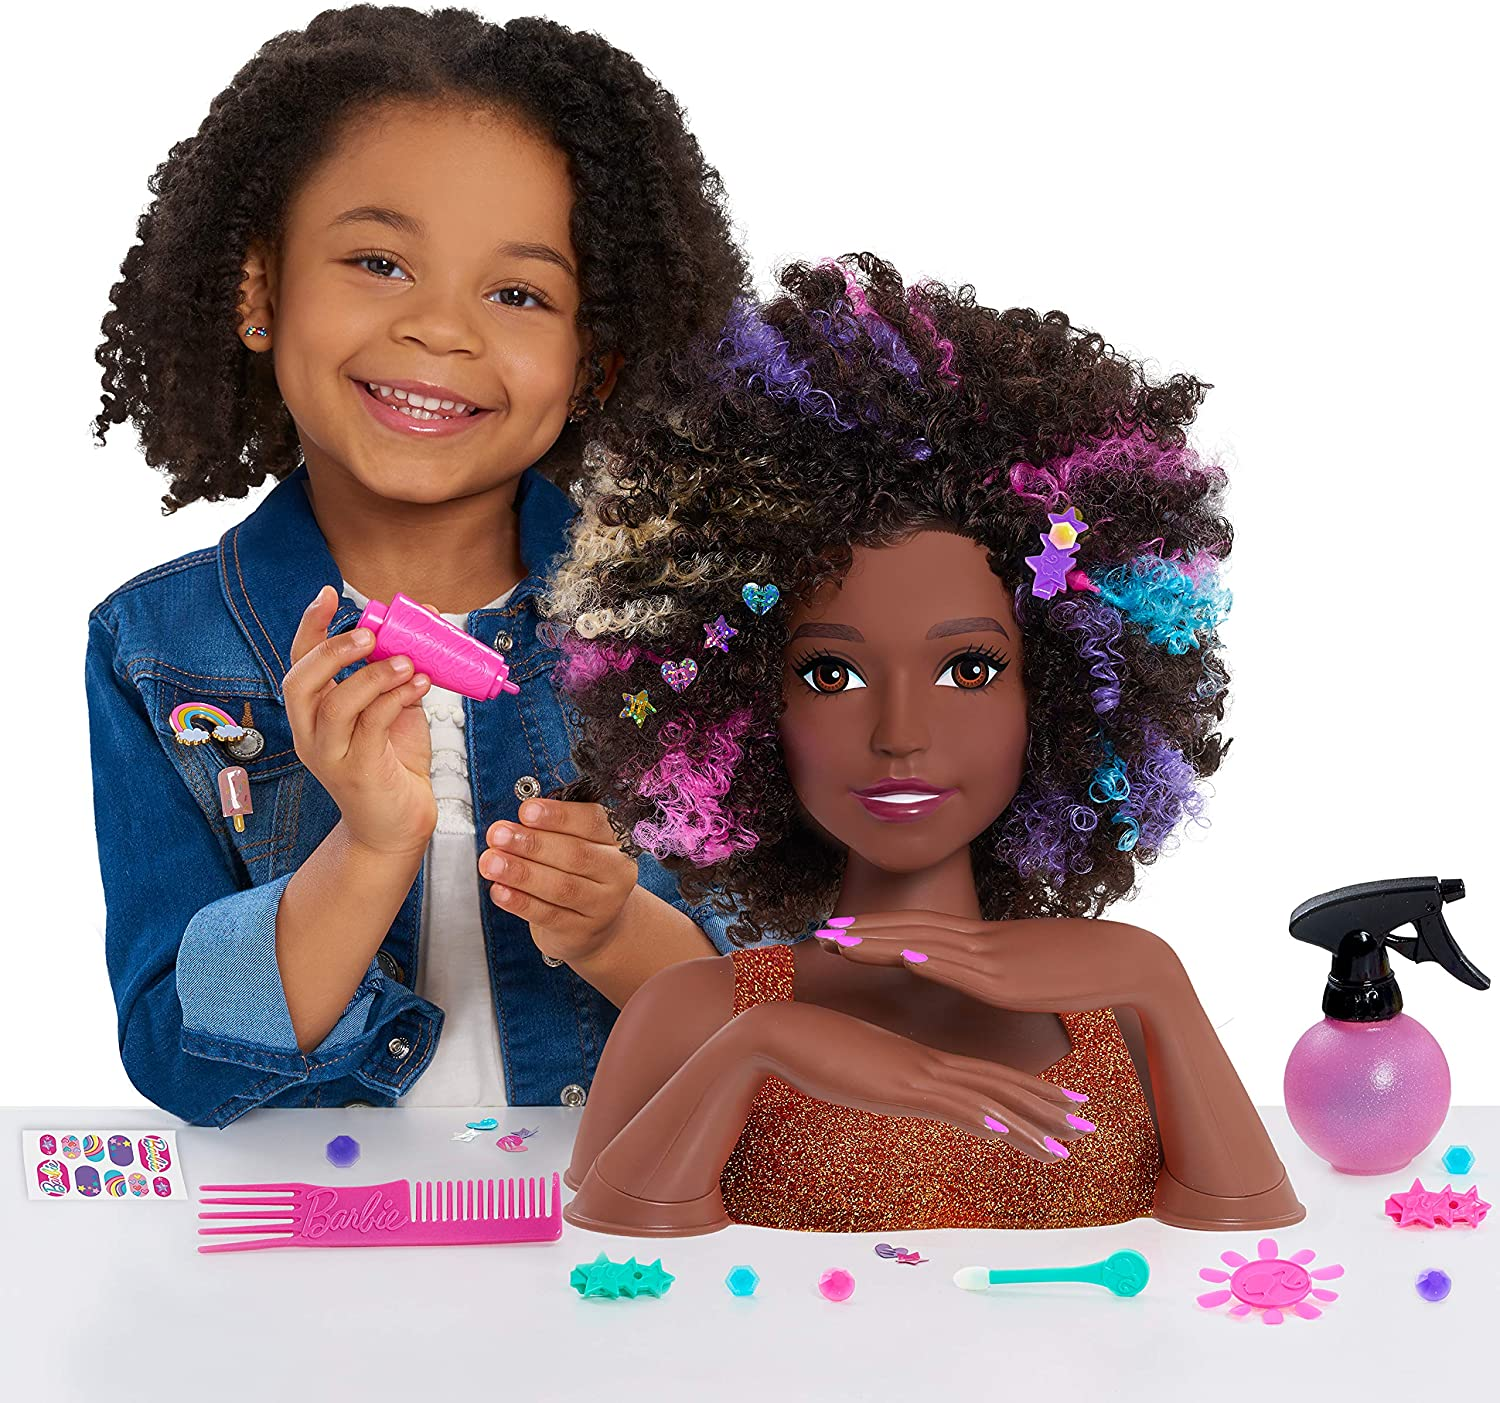 Amazon Com Barbie Rainbow Sparkle Deluxe Styling Head Curly Hair Toys Games